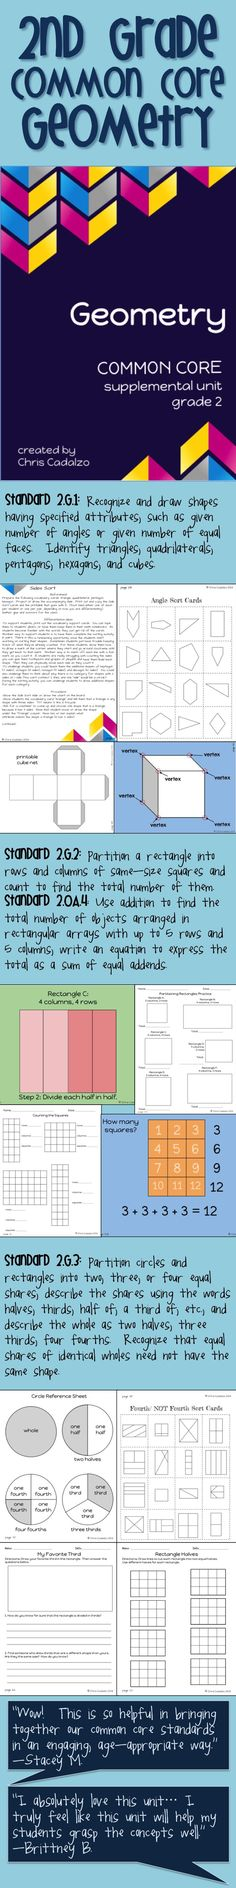 292 best Common Core Geometry Resources images on Pinterest ...